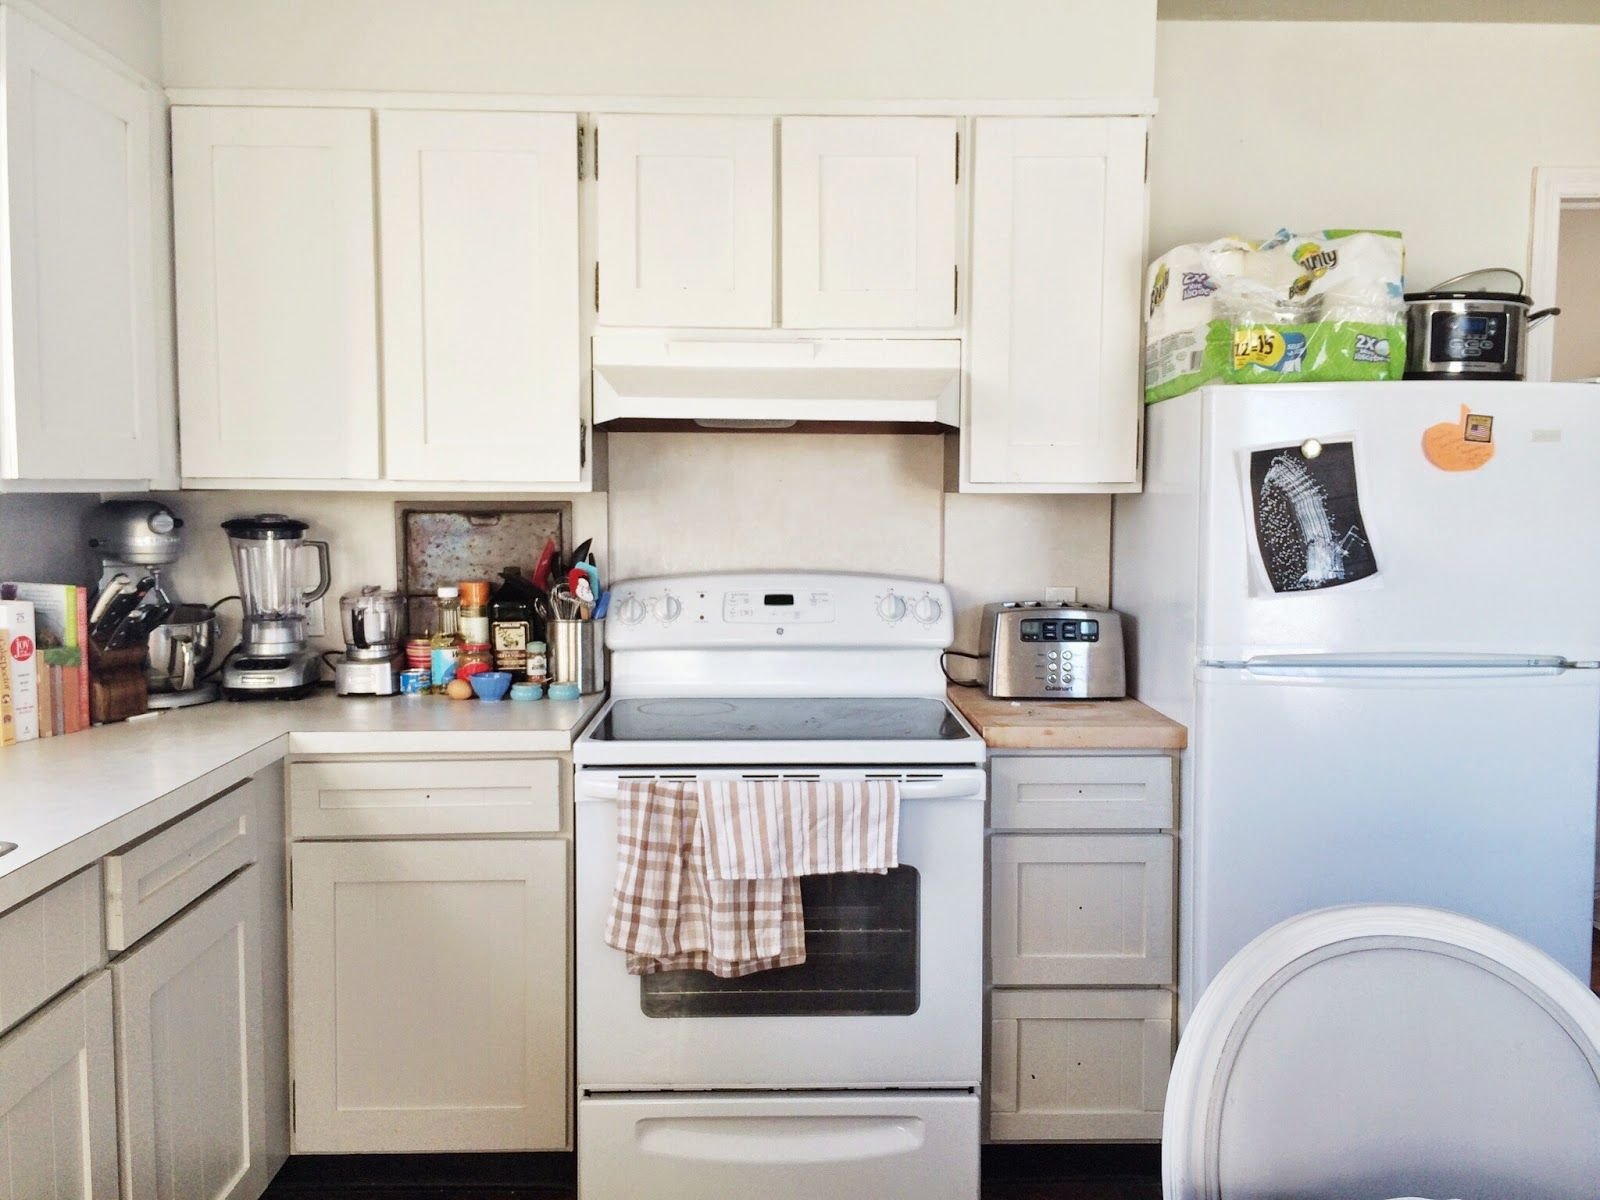 how to paint add shaker trim to kitchen cabinets shaker trim kitchen cabinets kitchen on kitchen cabinets trim id=43915